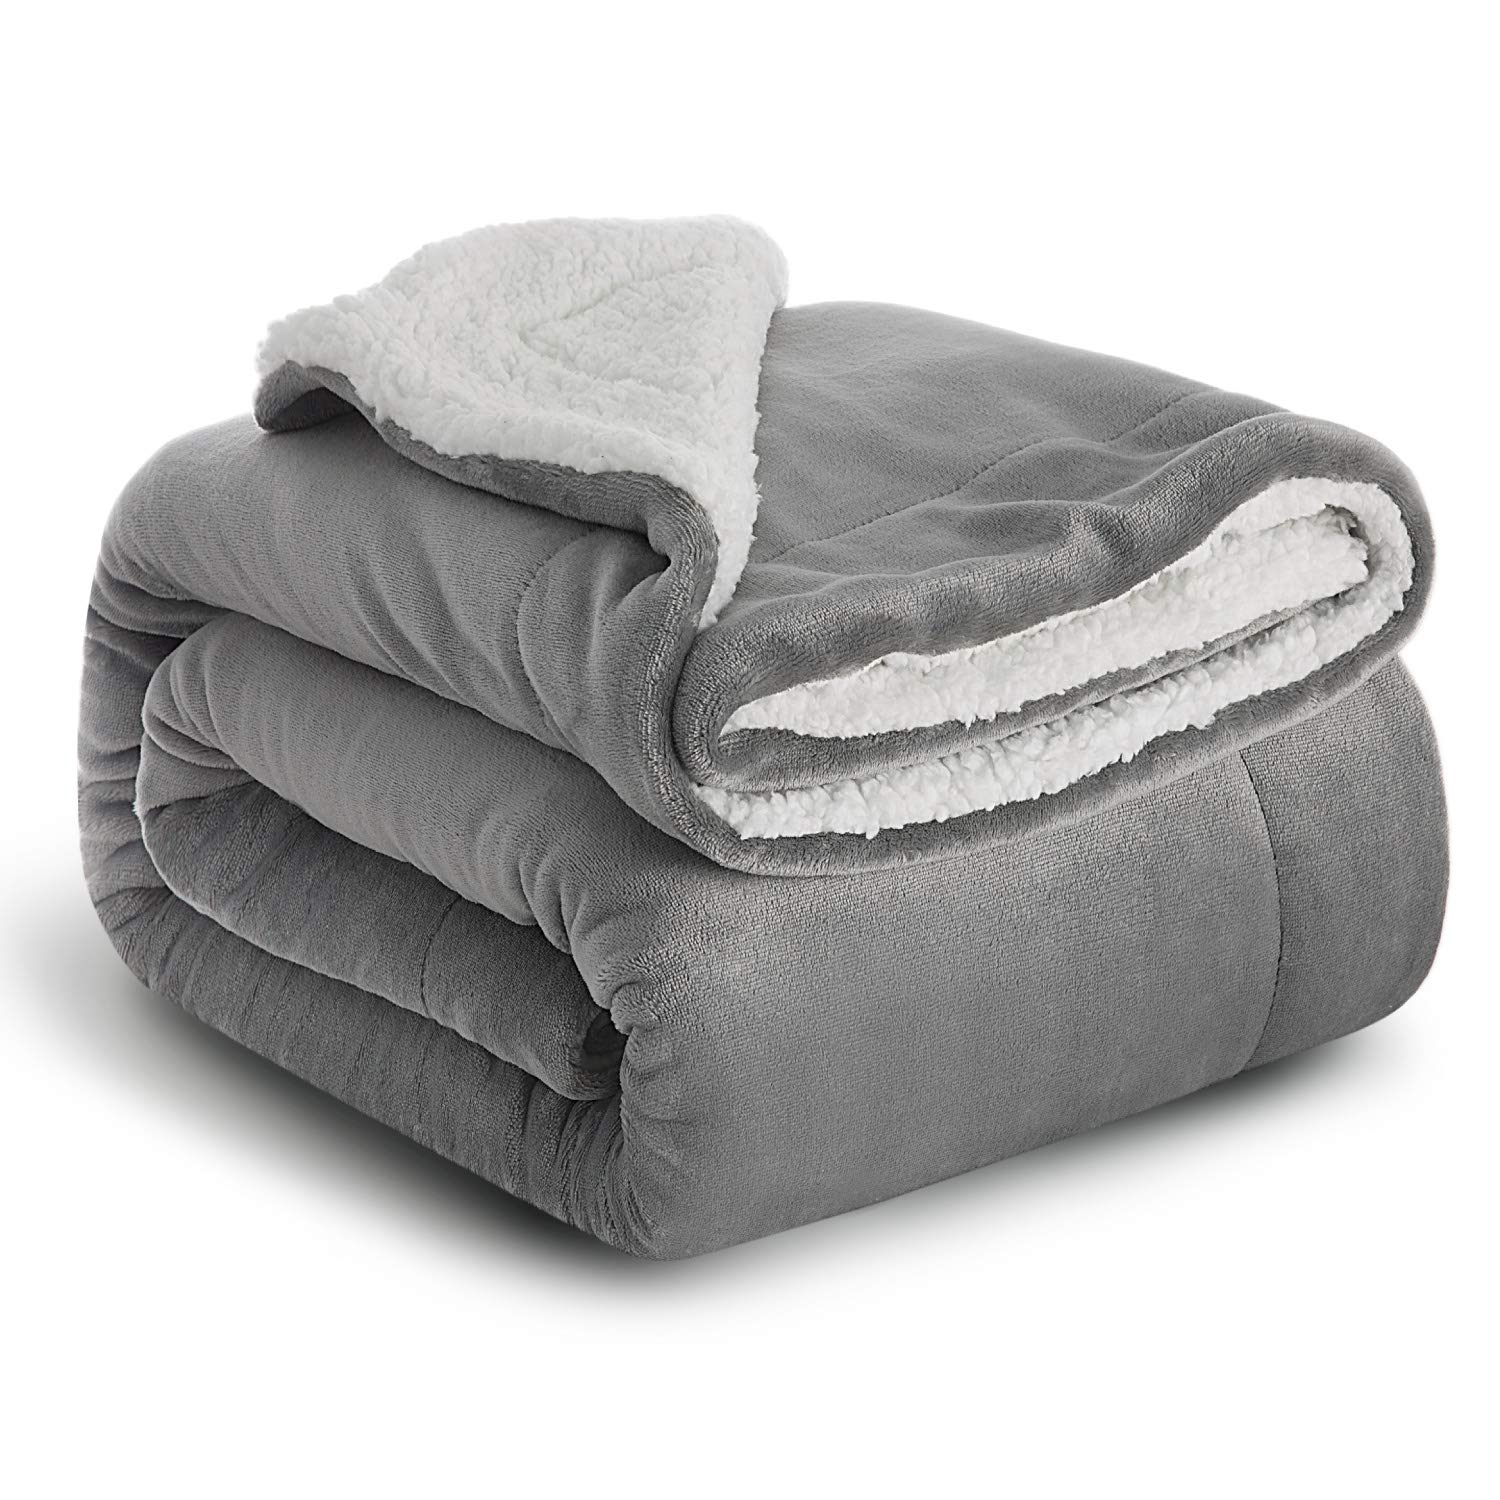 CDM product Bedsure Grey Sherpa Twin Blanket Plush Blanket Fuzzy Soft Super Cozy Microfiber, Warm Winter Blankets for Bed Sofa Couch big image